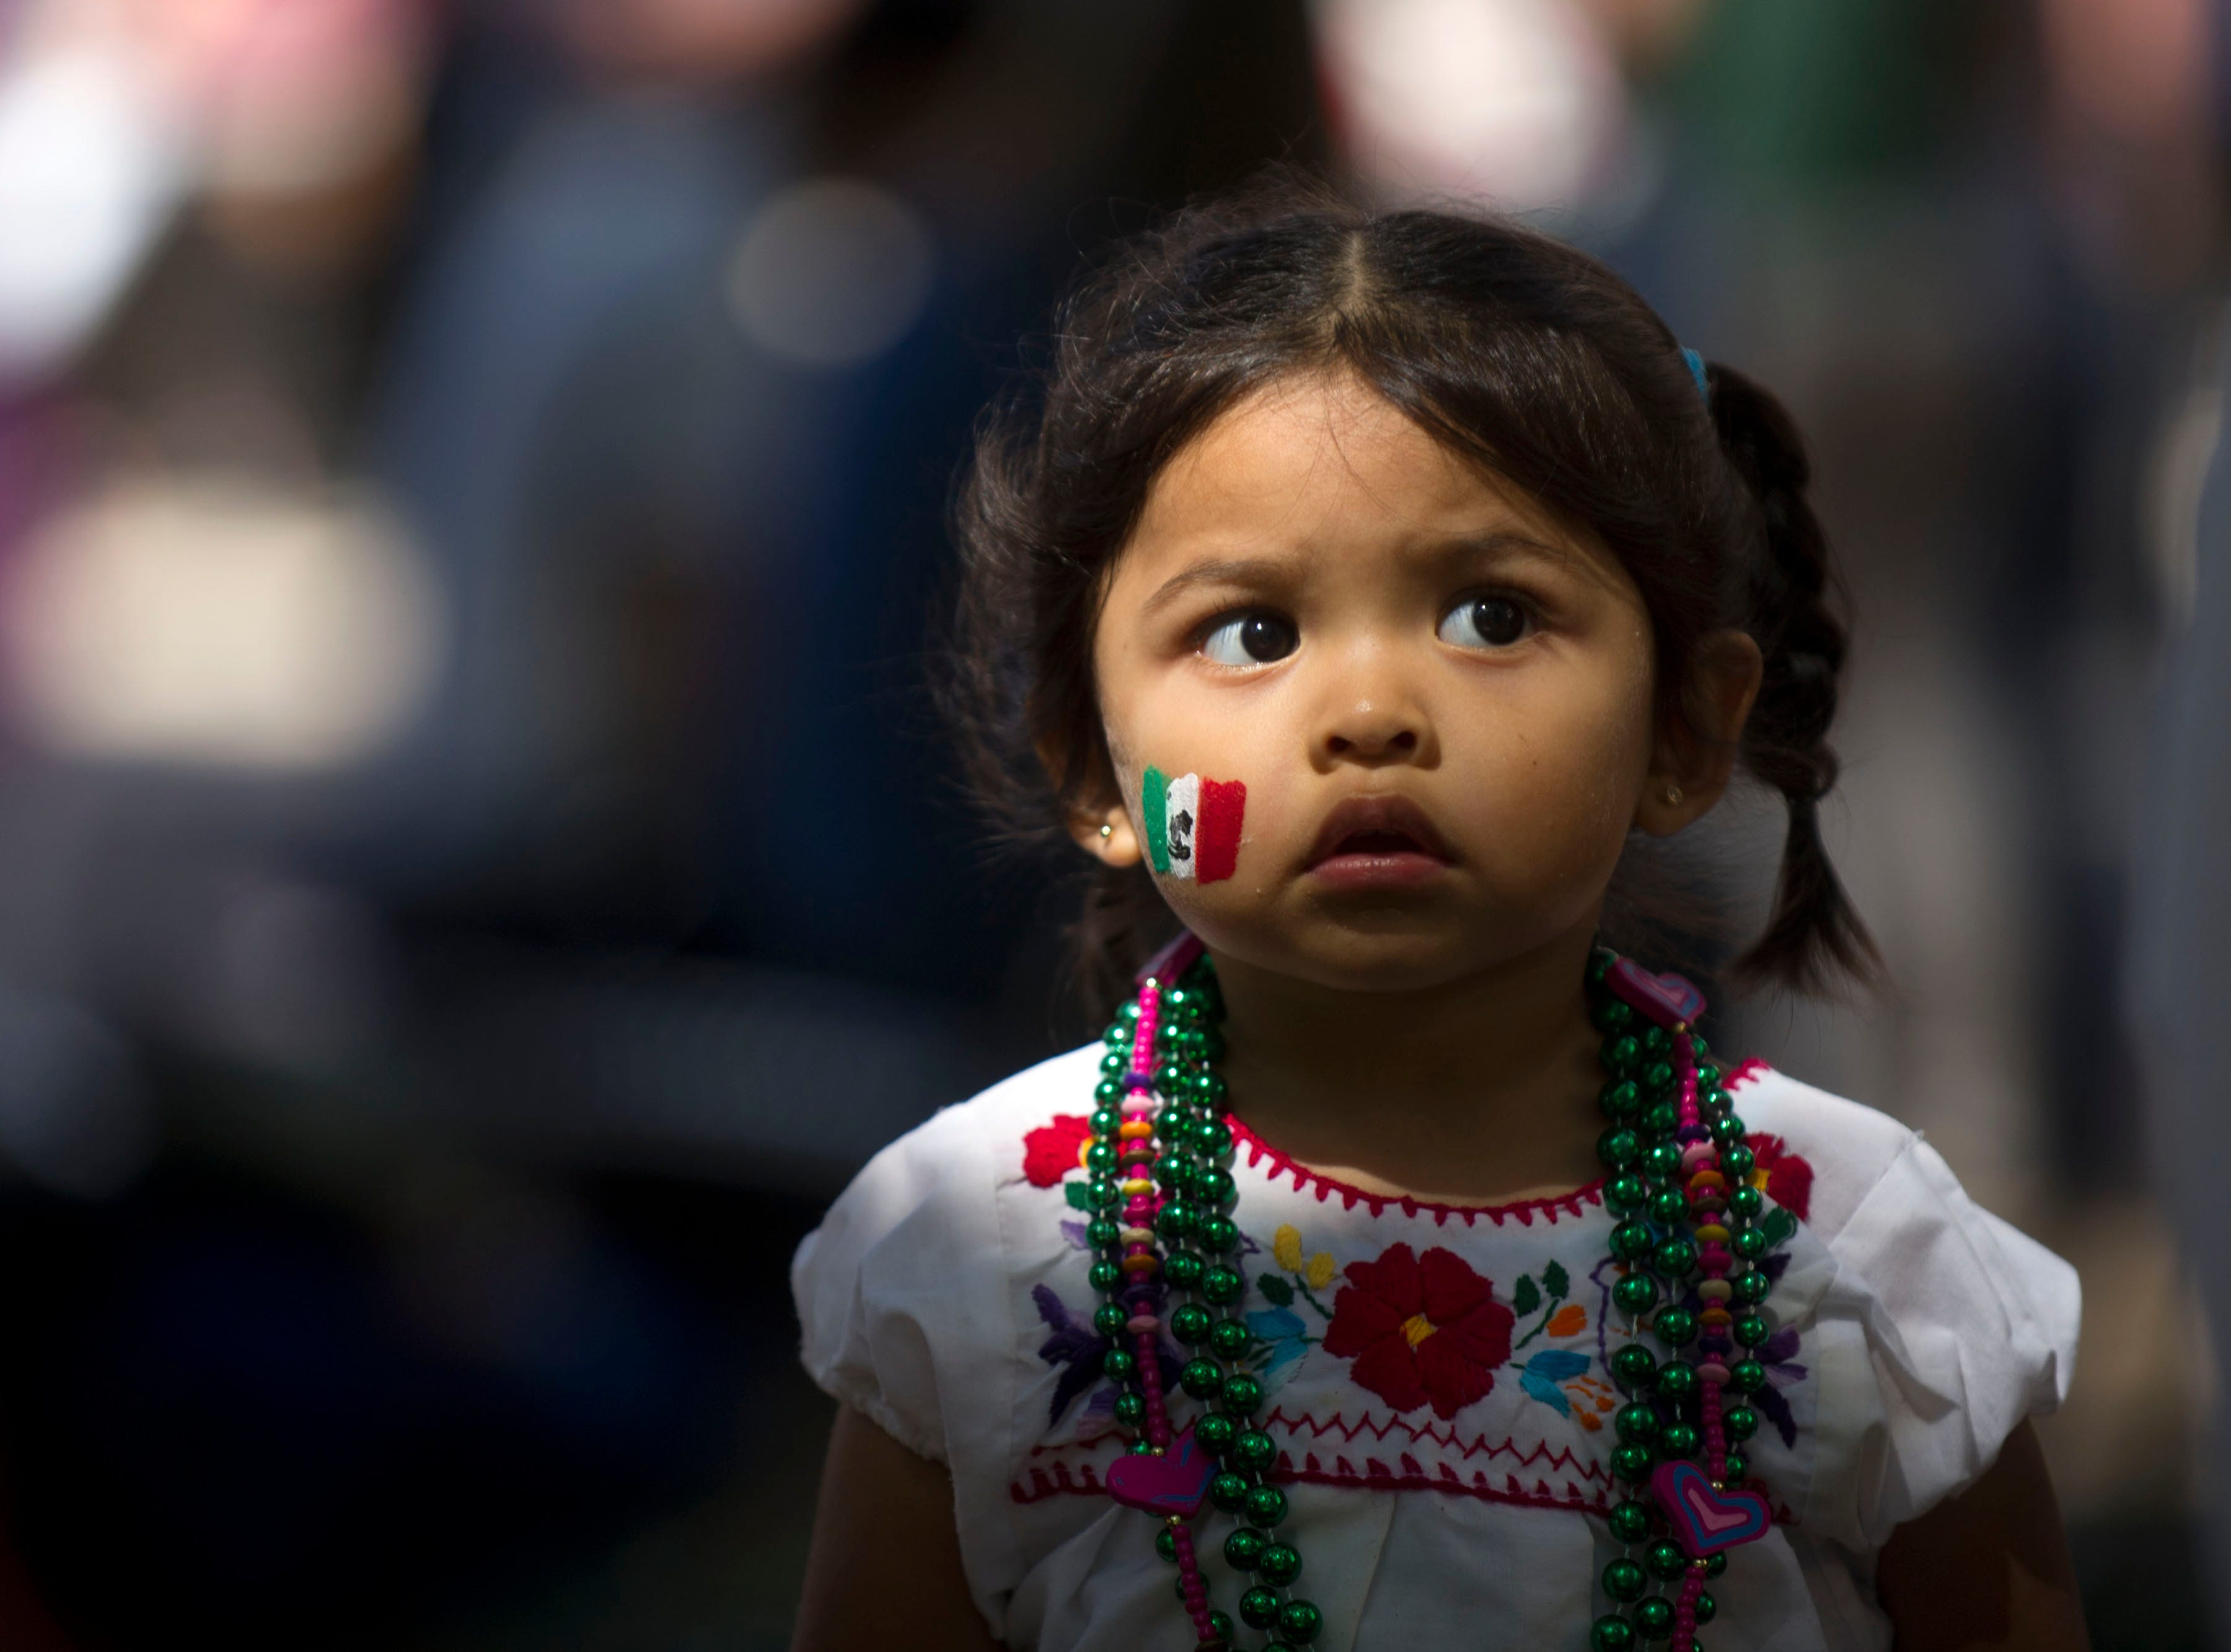 The flag of Mexico decorates Nicole De Arcos' cheek during the HoLa Festival at Market Square on Sunday, September 22, 2013